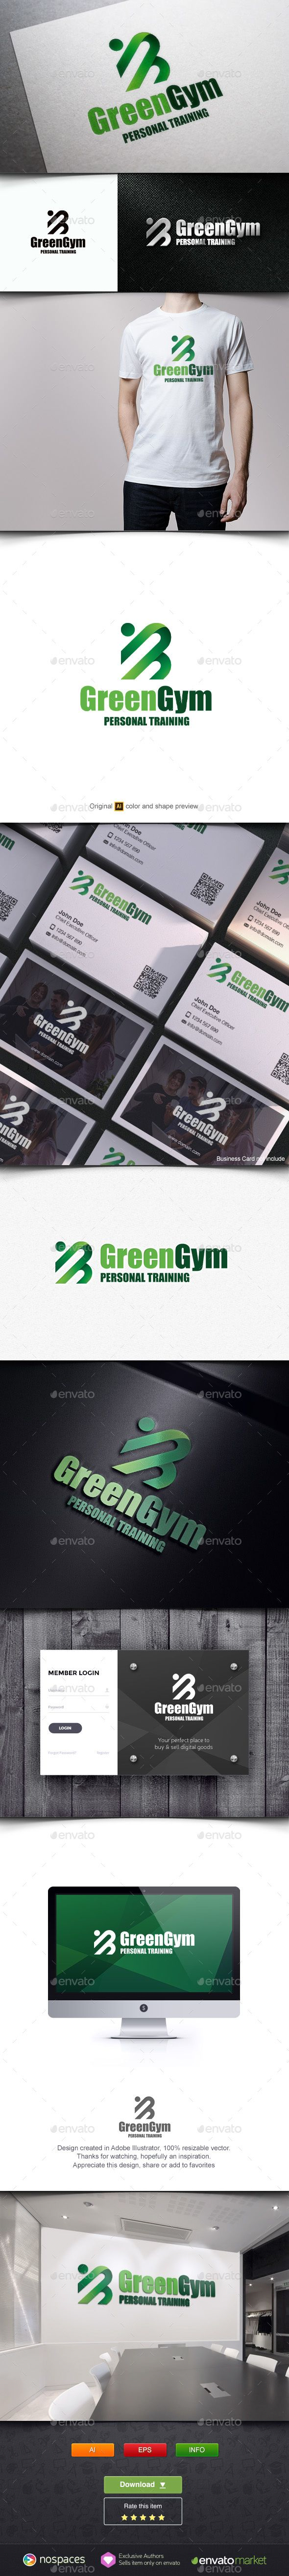 Green Gym Logo — Vector EPS #system #unique • Available here → https://graphicriver.net/item/green-gym-logo/7061195?ref=pxcr